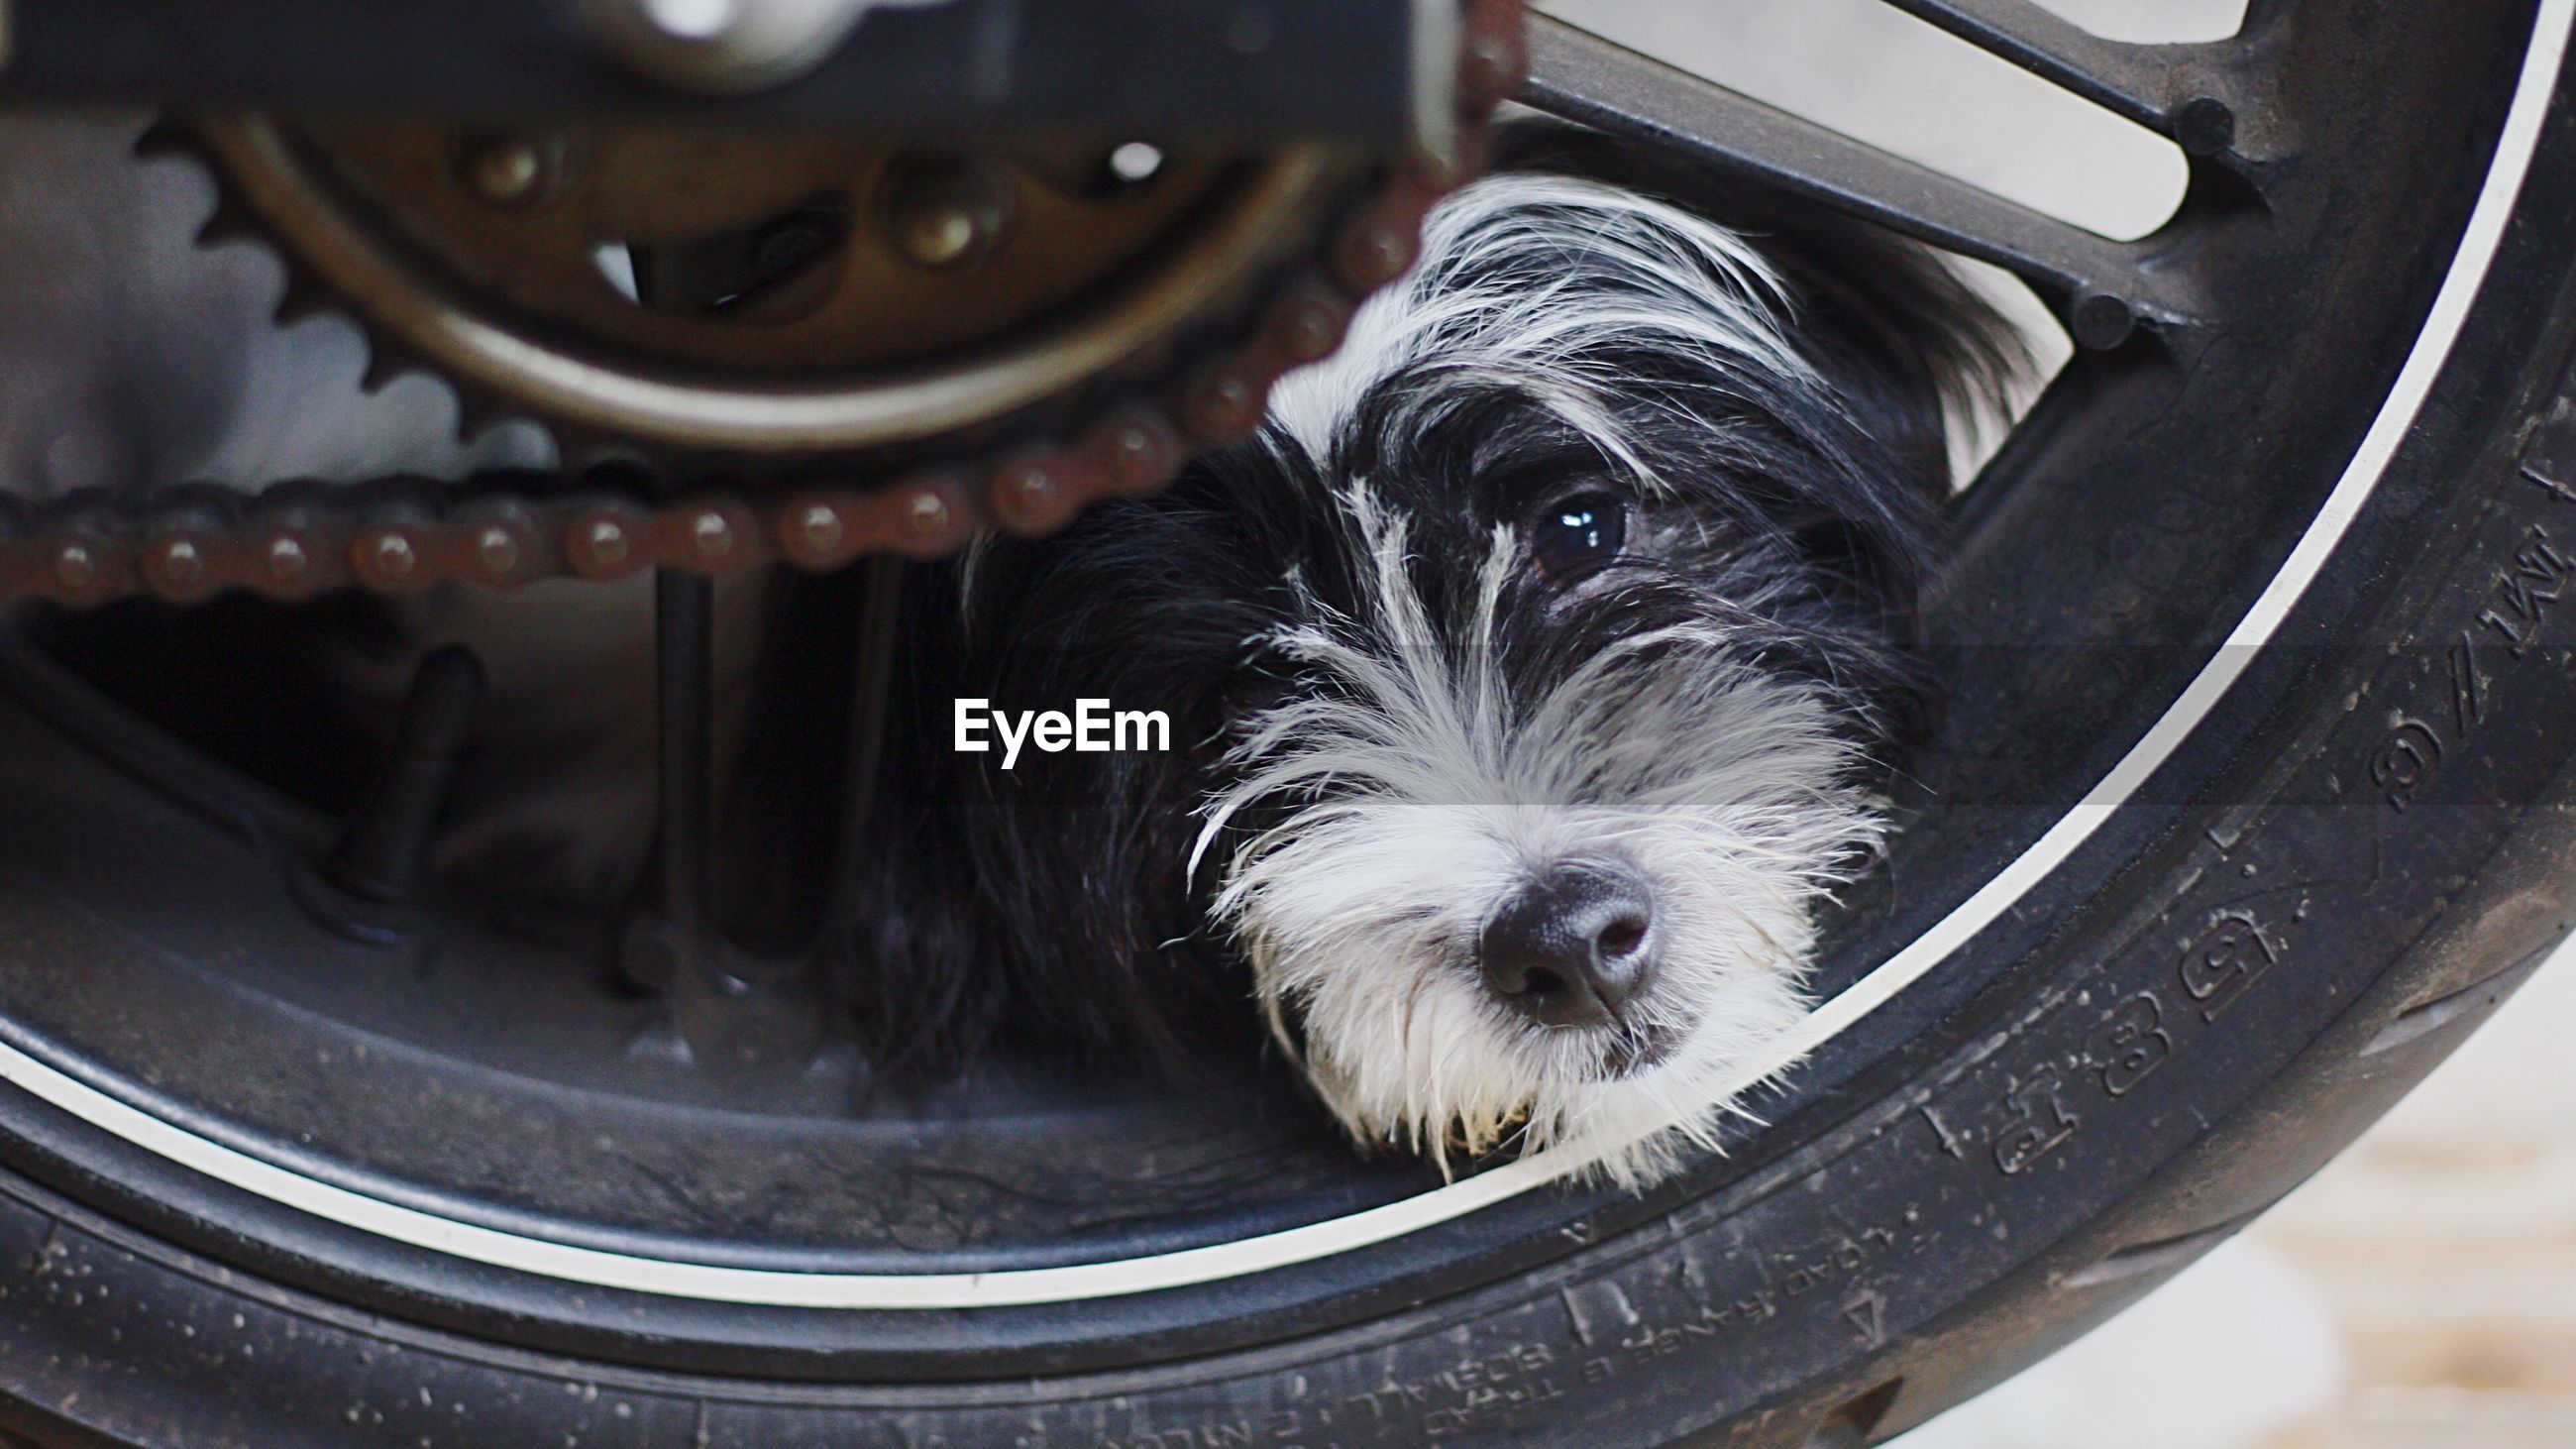 Close-up portrait of dog on tire